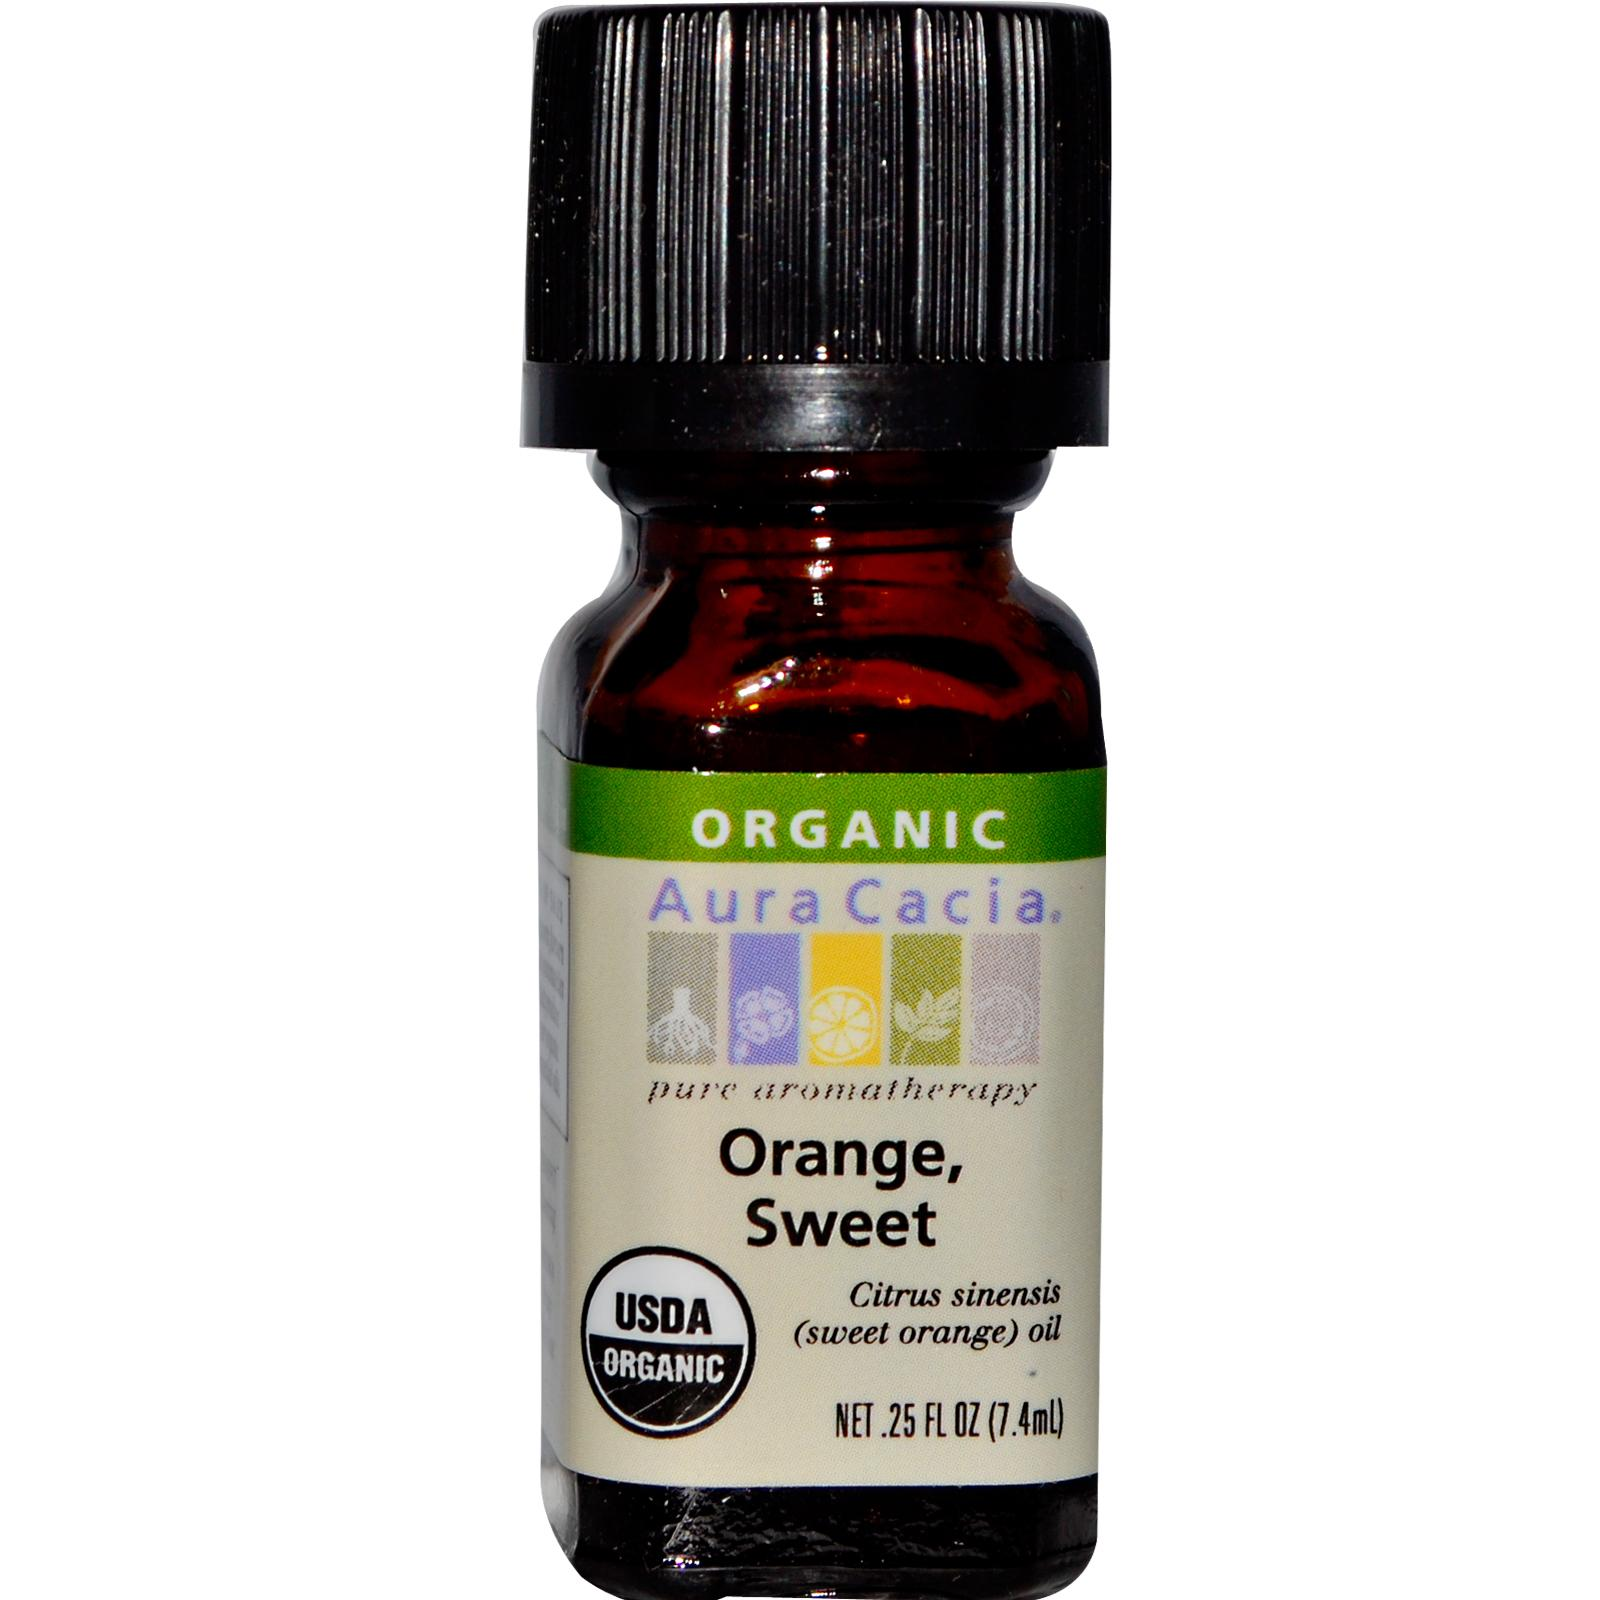 Organic Essential Oil - Aura Cacia - Orange aromatherapy, essential oil, organic, all natural, aura cacia, certified, doTerra,  therapeutic grade, pure, orange,